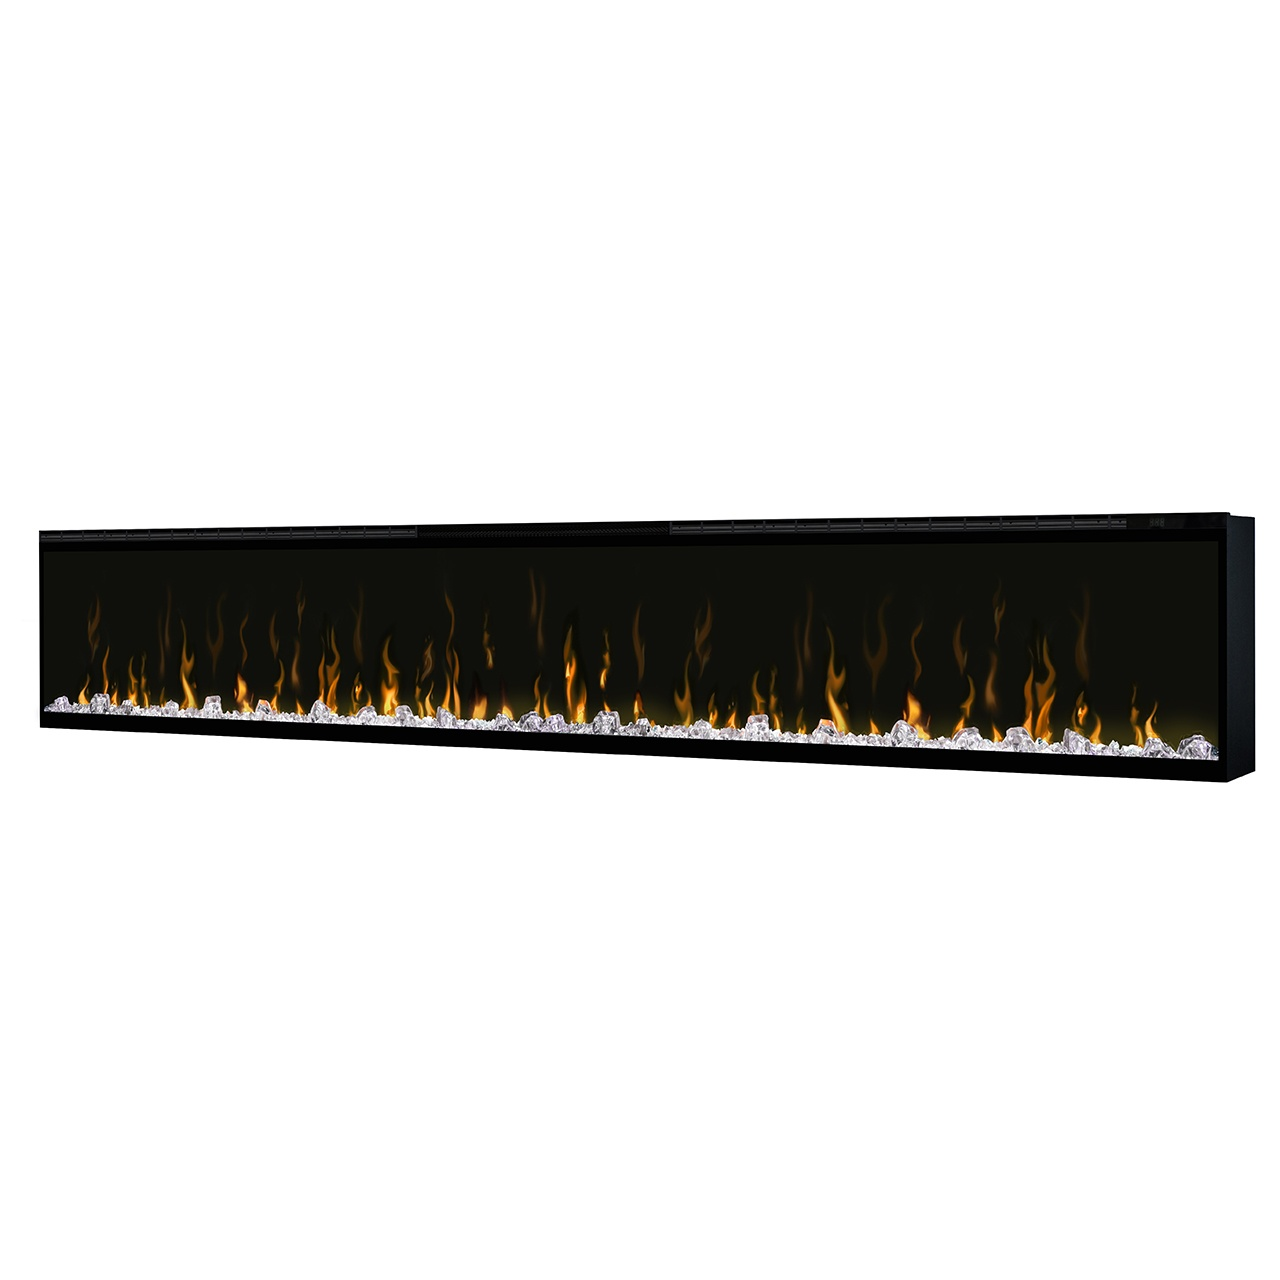 Dimplex XLF100 Ignite Electric Fireplace